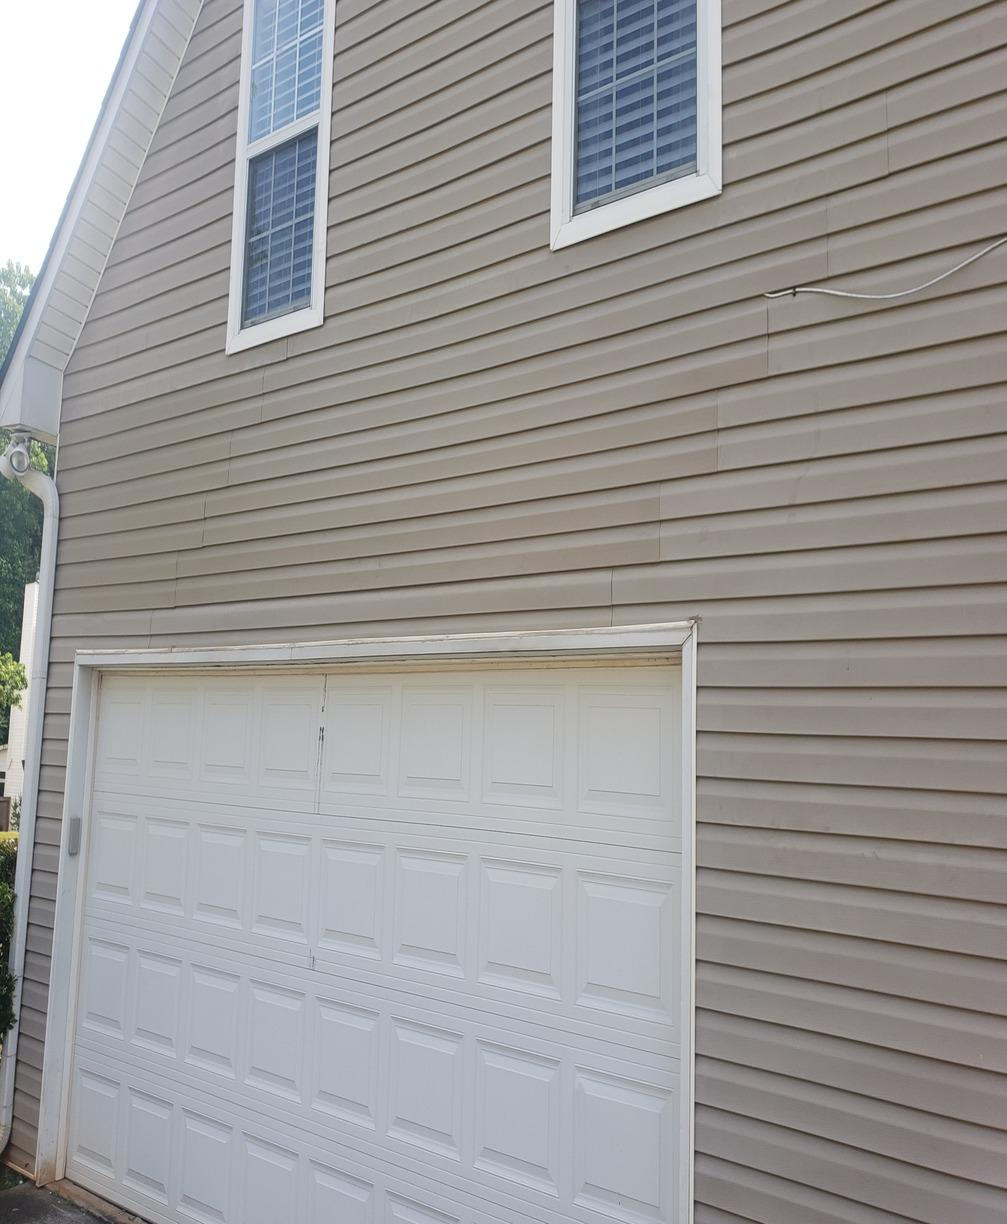 Siding repair in Decatur, GA - After Photo